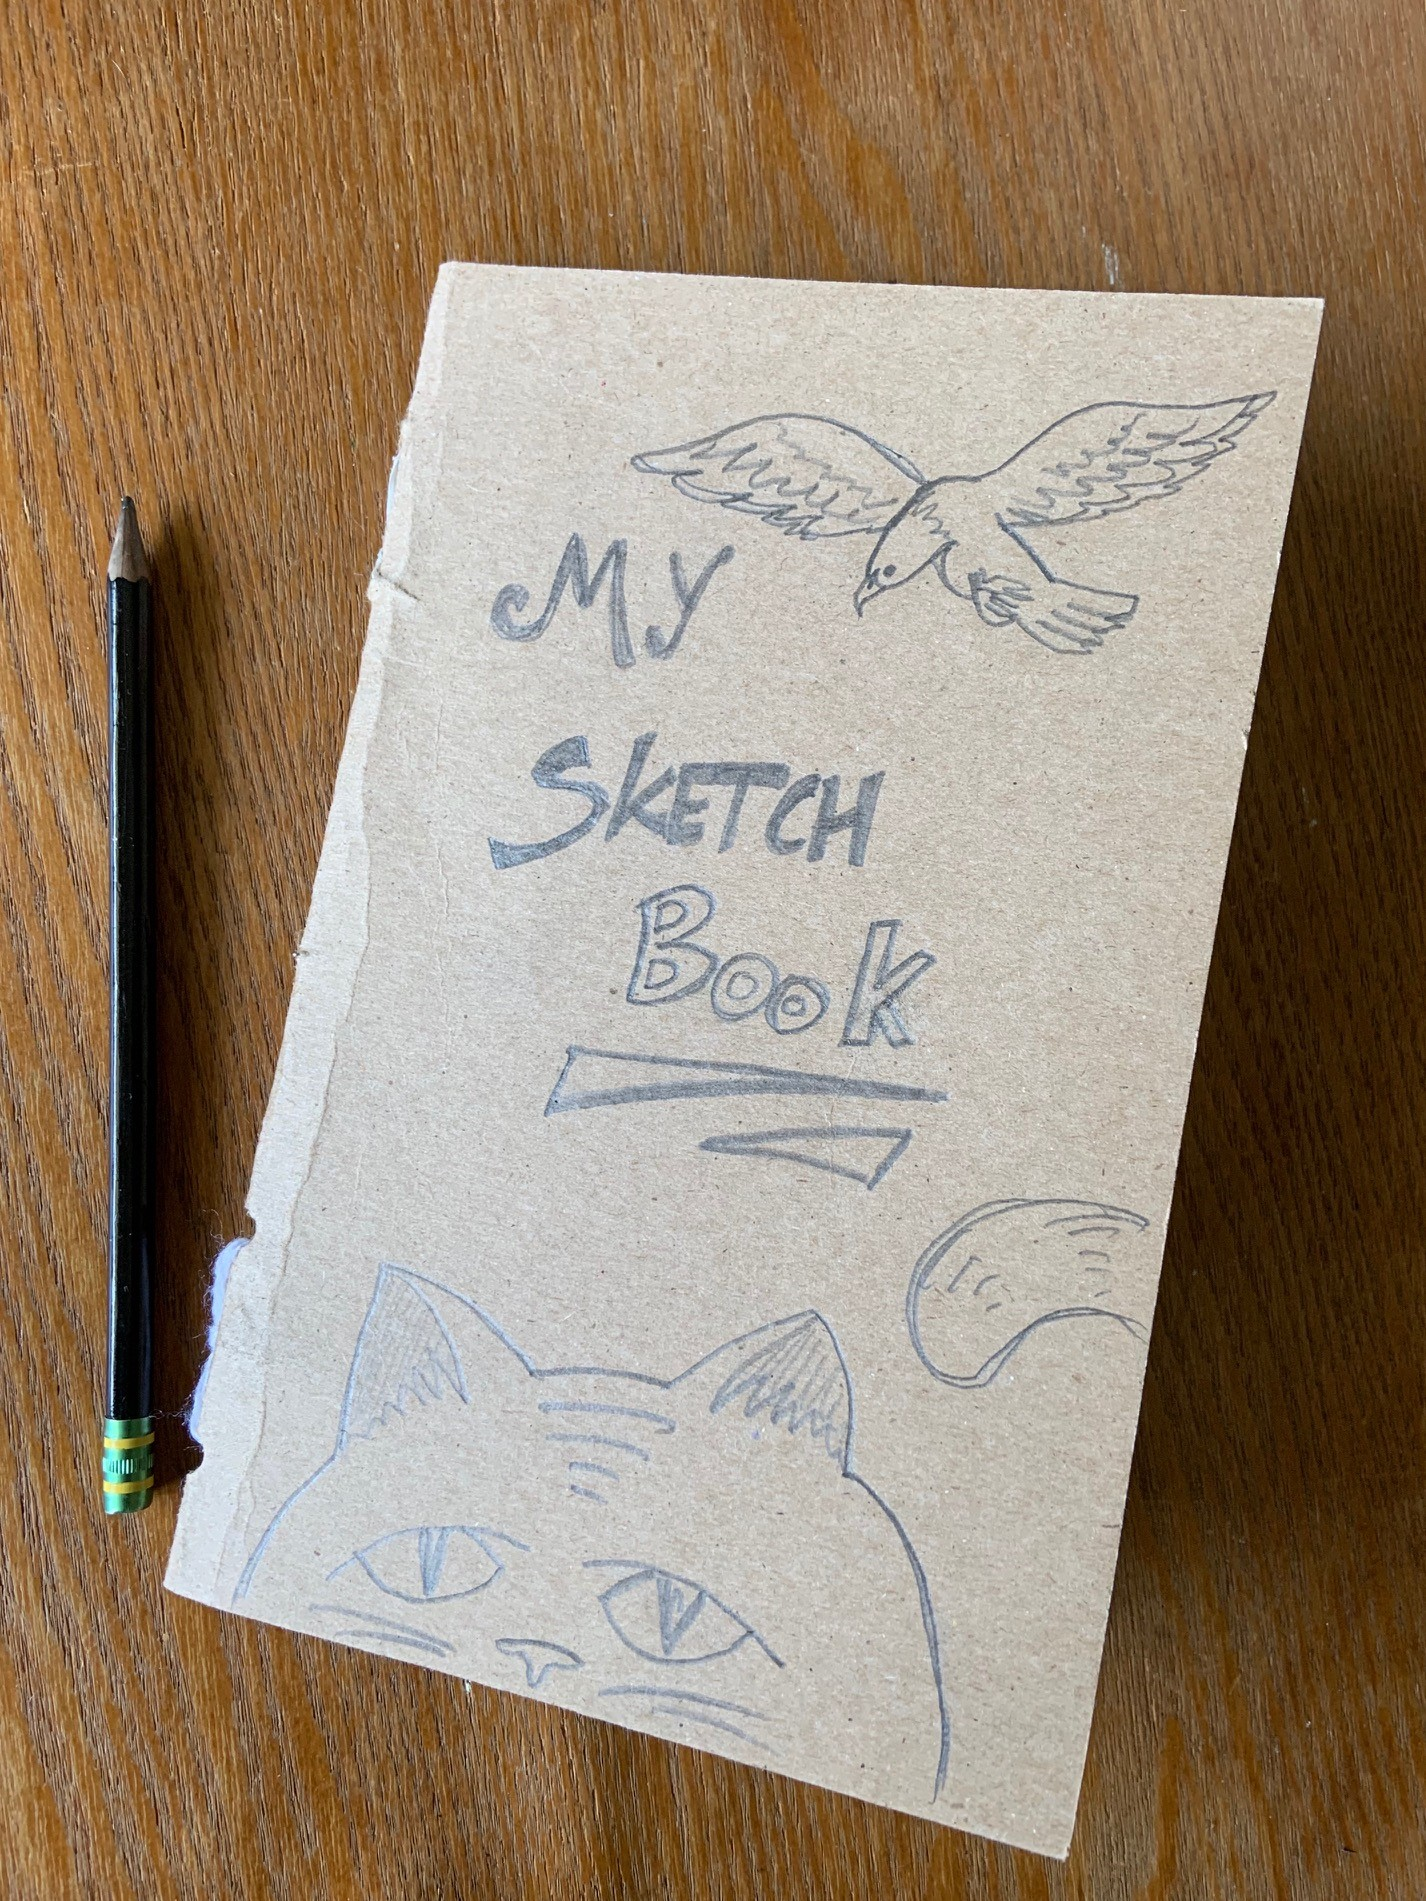 Homemade sketchbook with a bird and the top of a cat's head drawn on the front